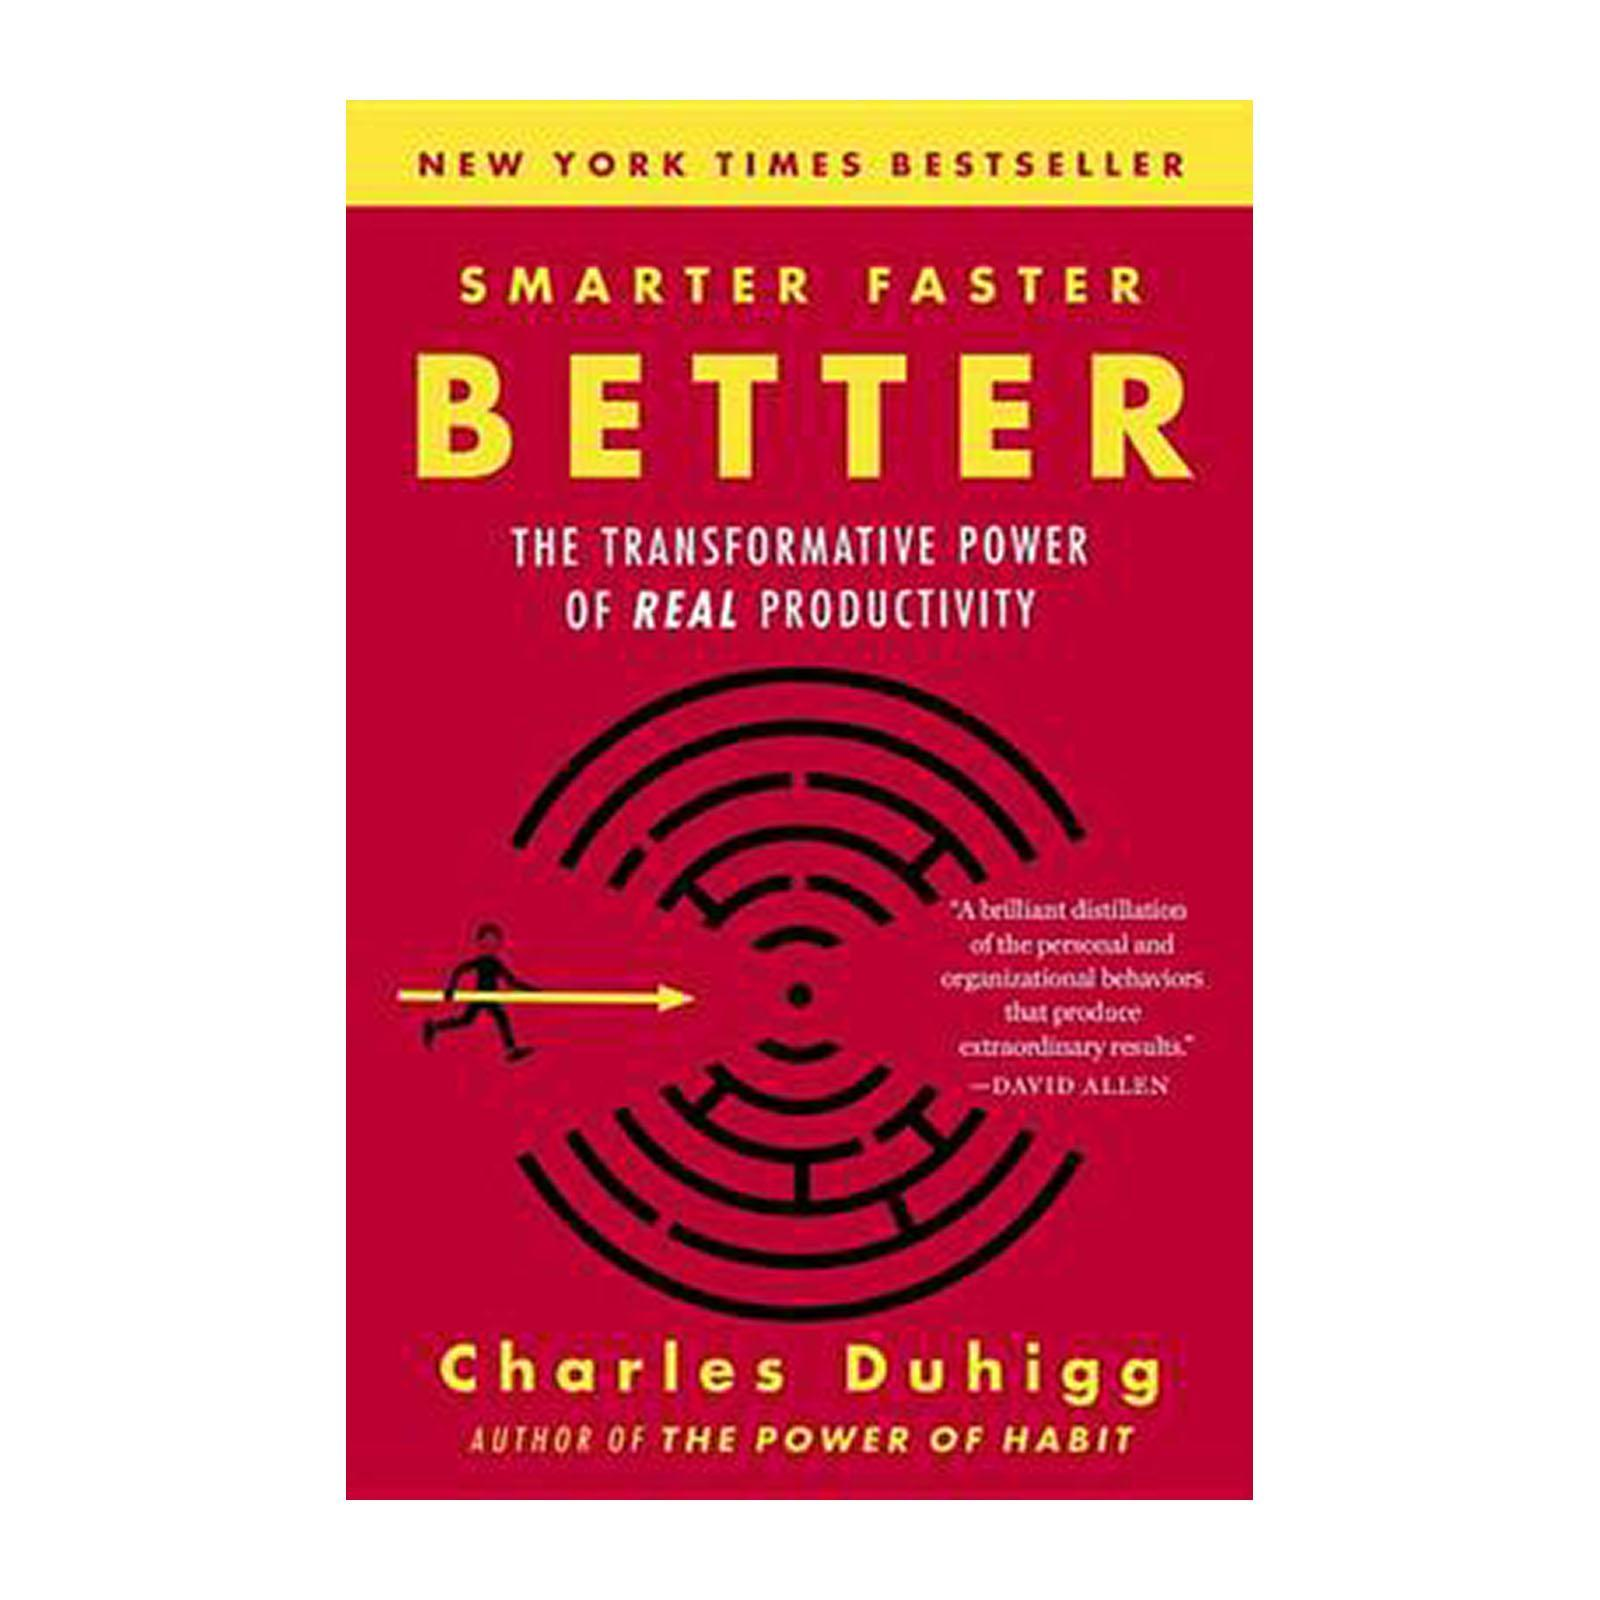 Smarter Faster Better: The Transformative Power Of Real Productivity (Paperback)